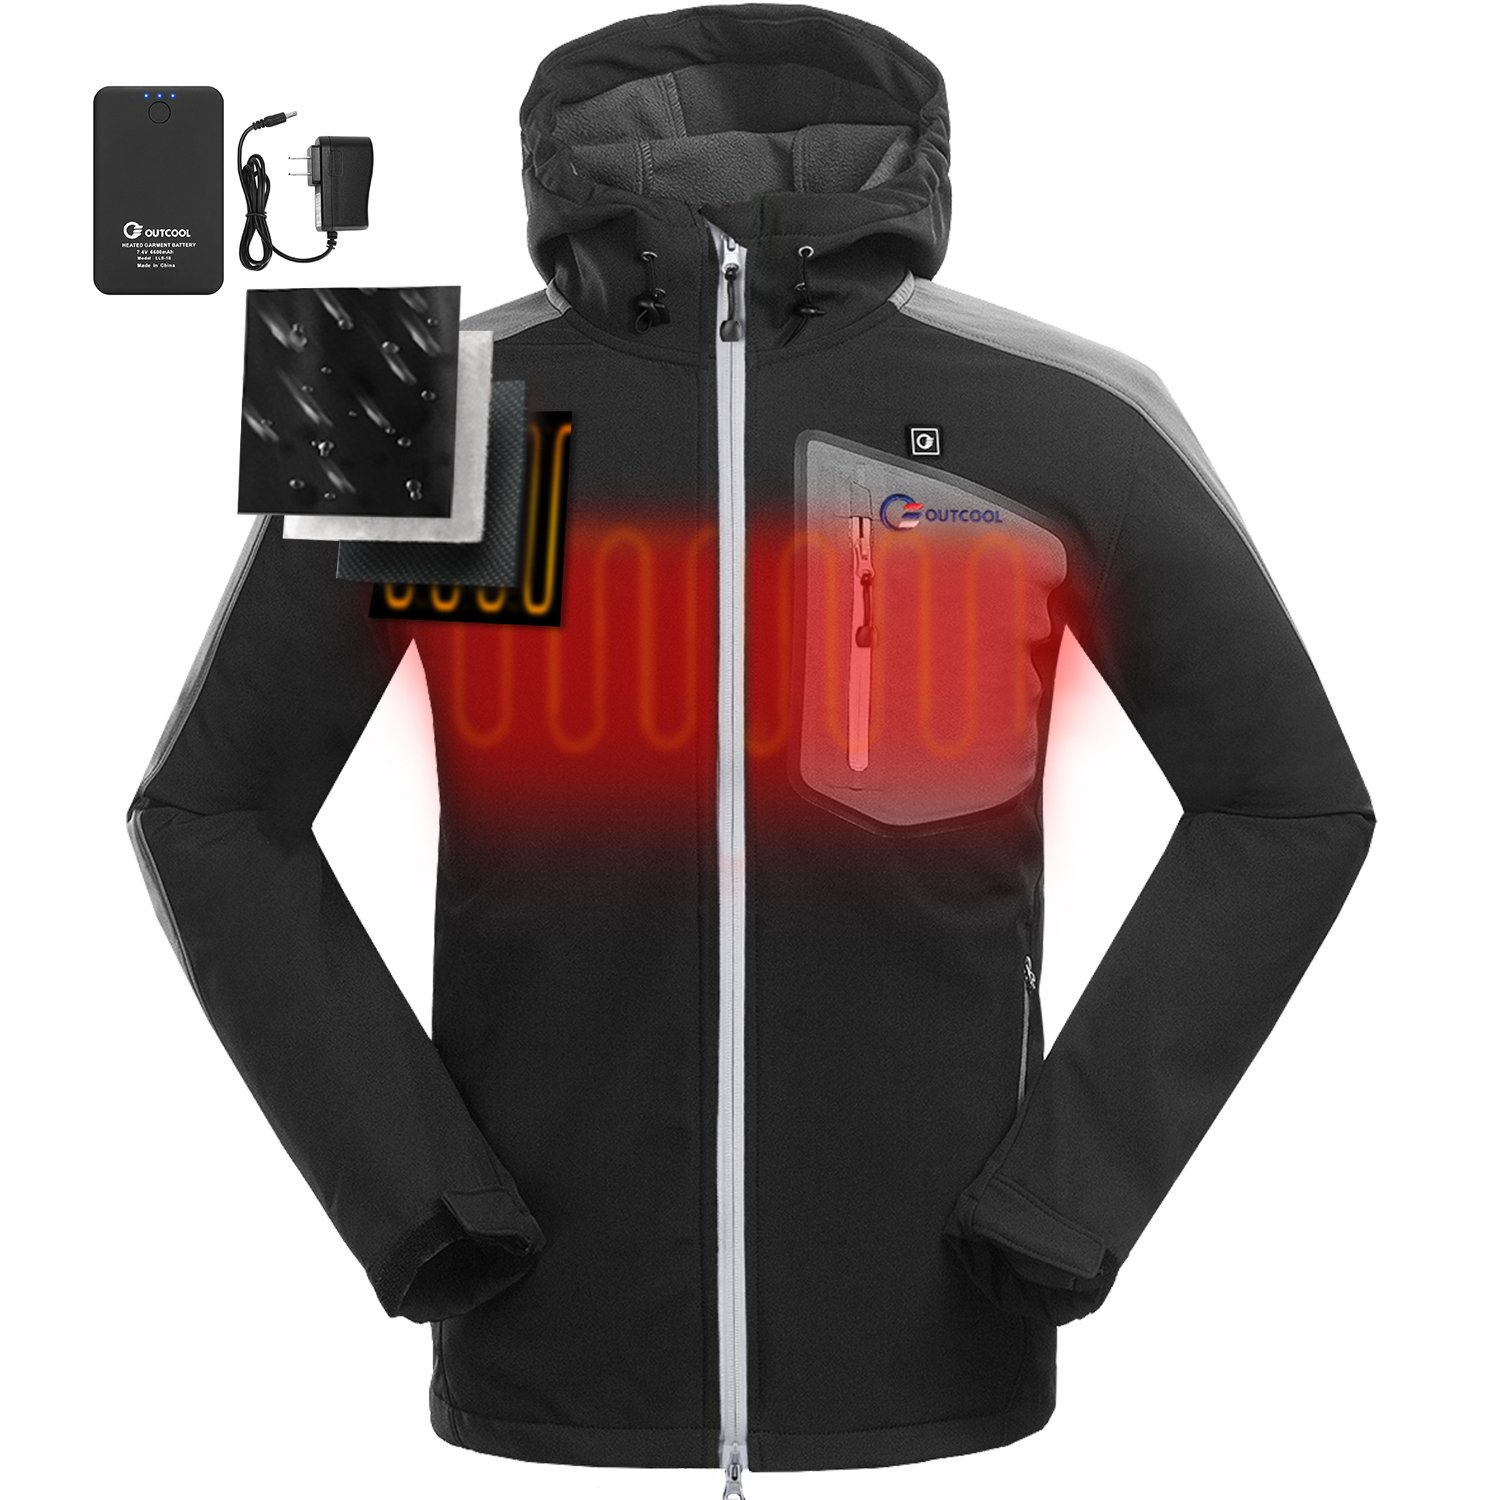 OUTCOOL Heated Jacket for Men with Hood Waterproof Windproof Soft Shell Winter Jacket(L)